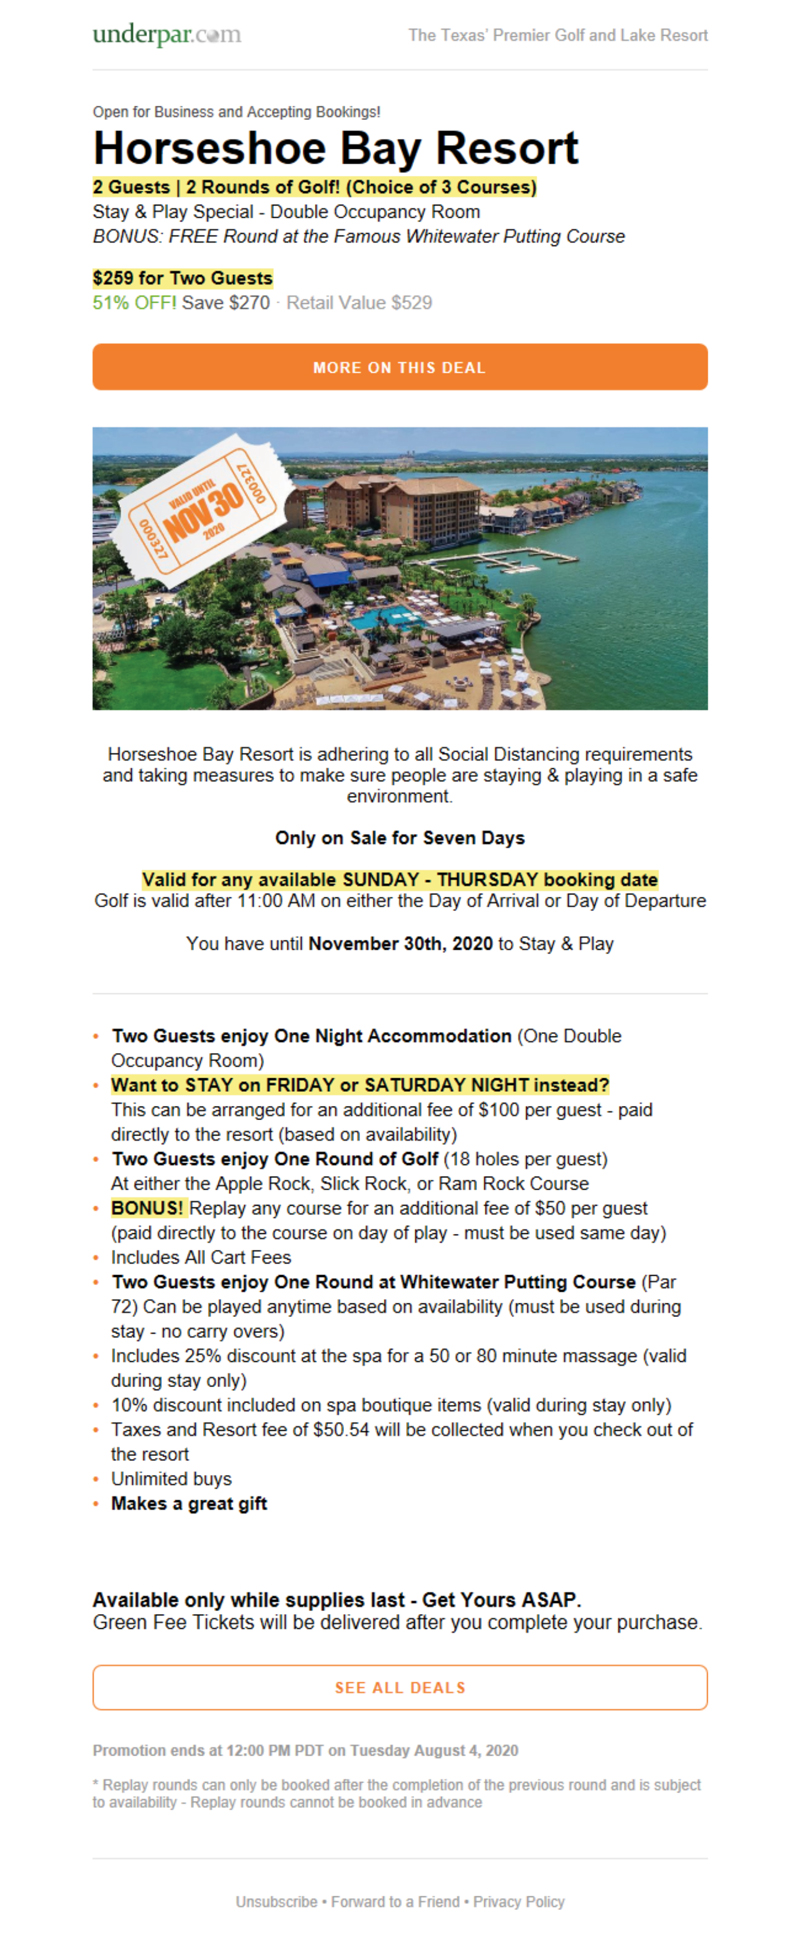 Horseshoe Bay Resort UnderPar Promotion